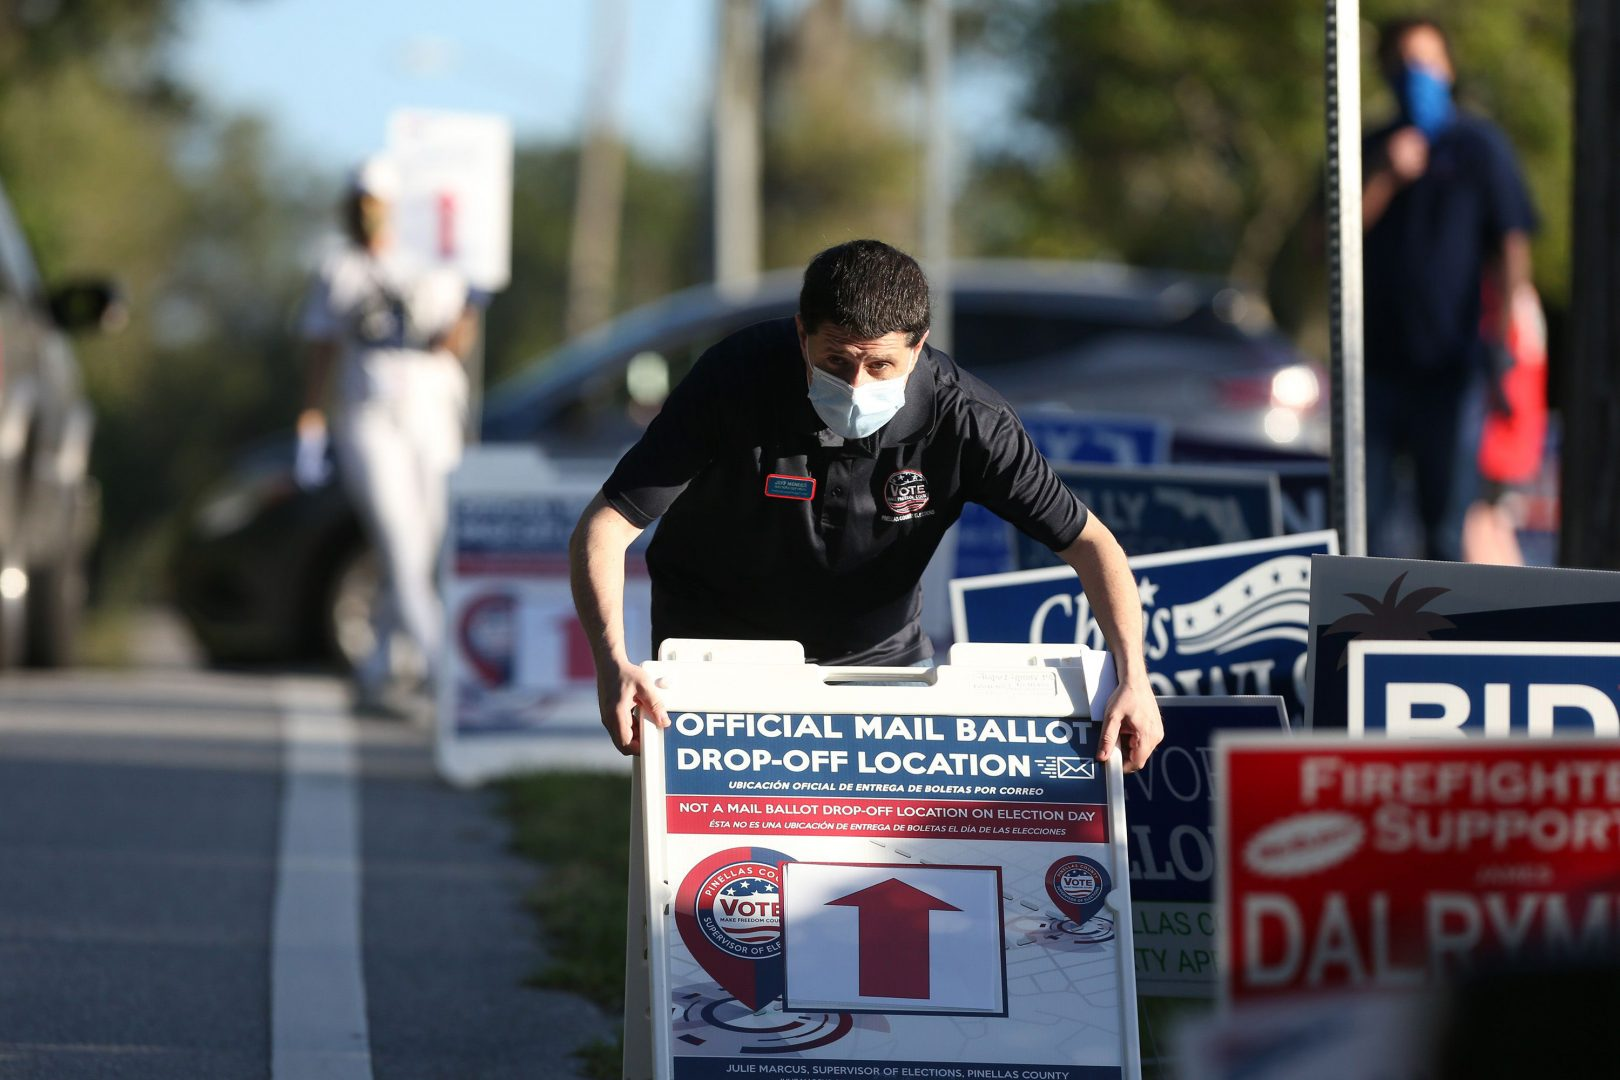 Jeff Mendes, an elections deputy with the Pinellas County Supervisor of Elections, displays a sign to inform voters of a mail ballot drop-off location at The Centre of Palm Harbor.